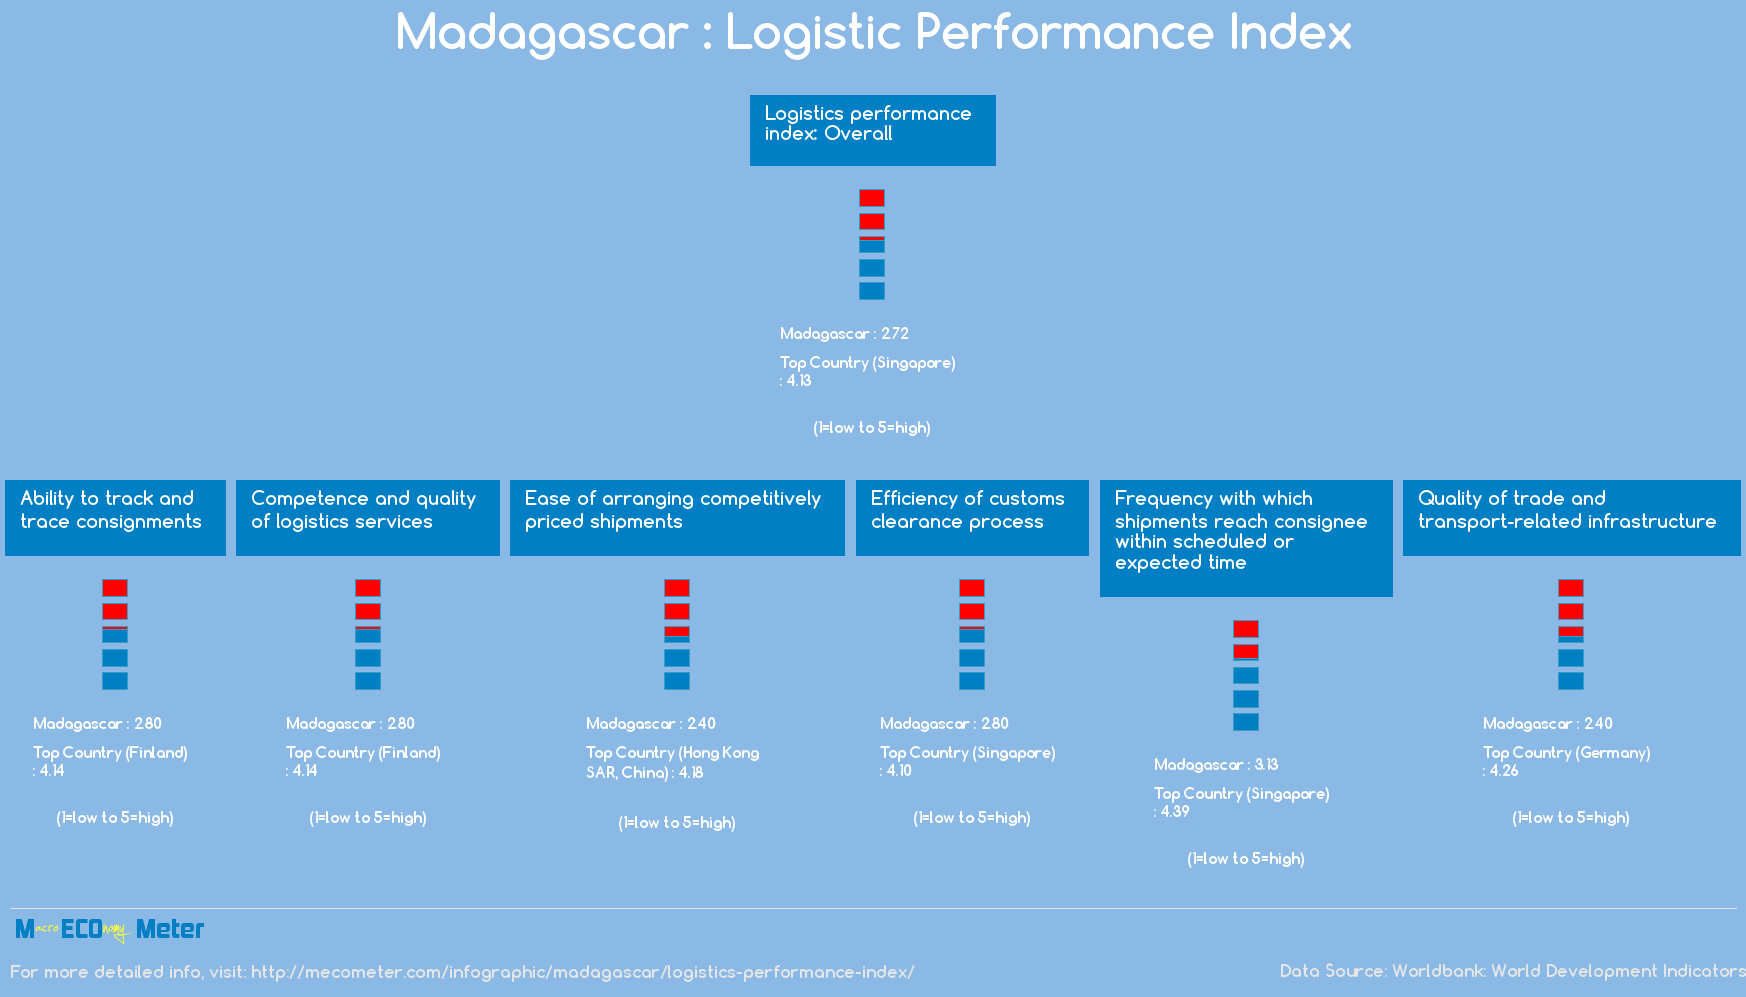 Madagascar : Logistic Performance Index